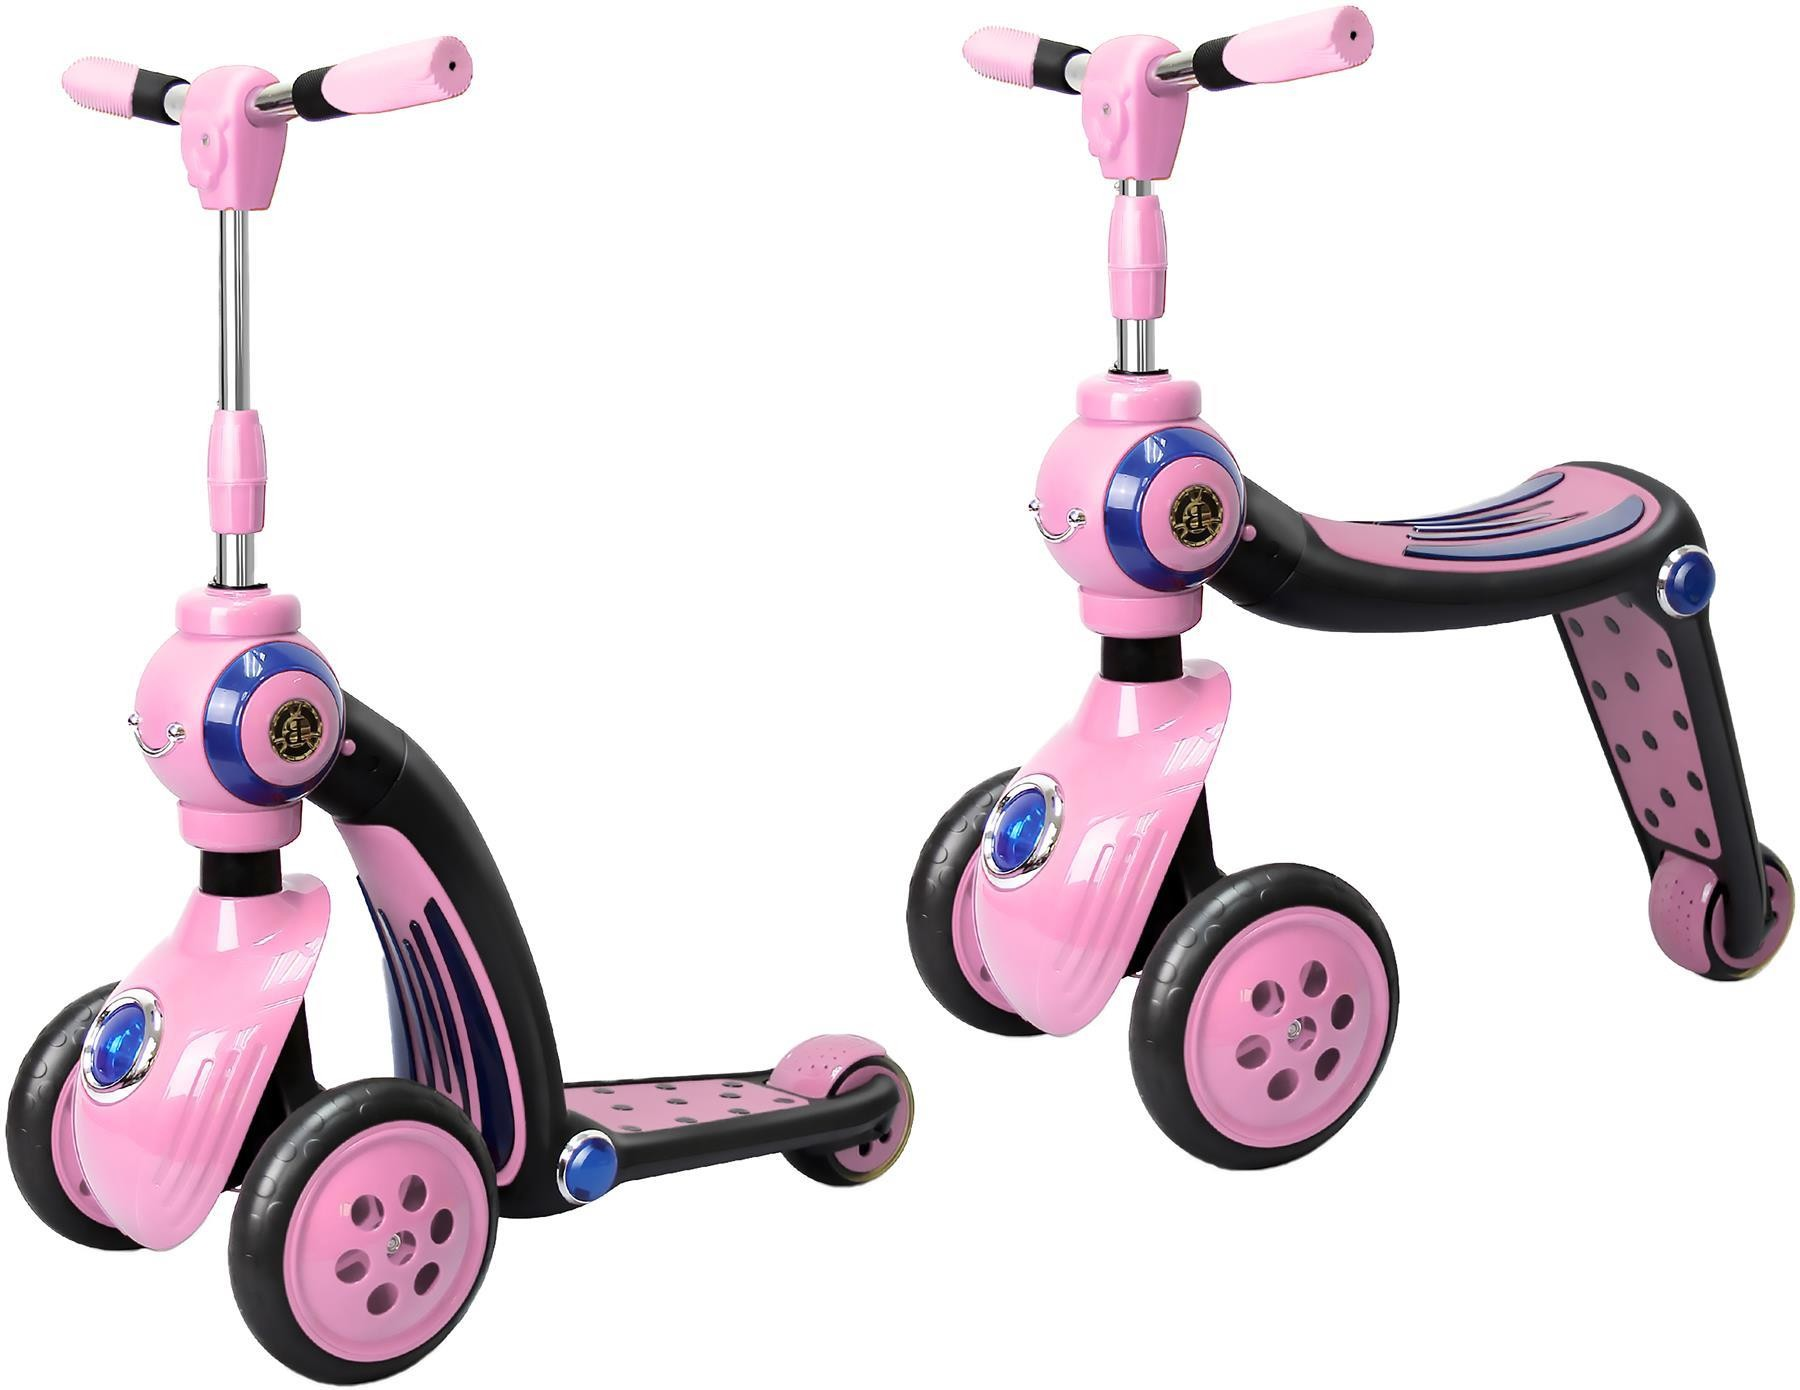 2-in-1 Switch Scooter, Transforms From Trike To A Scooter, Ride-on,Pink